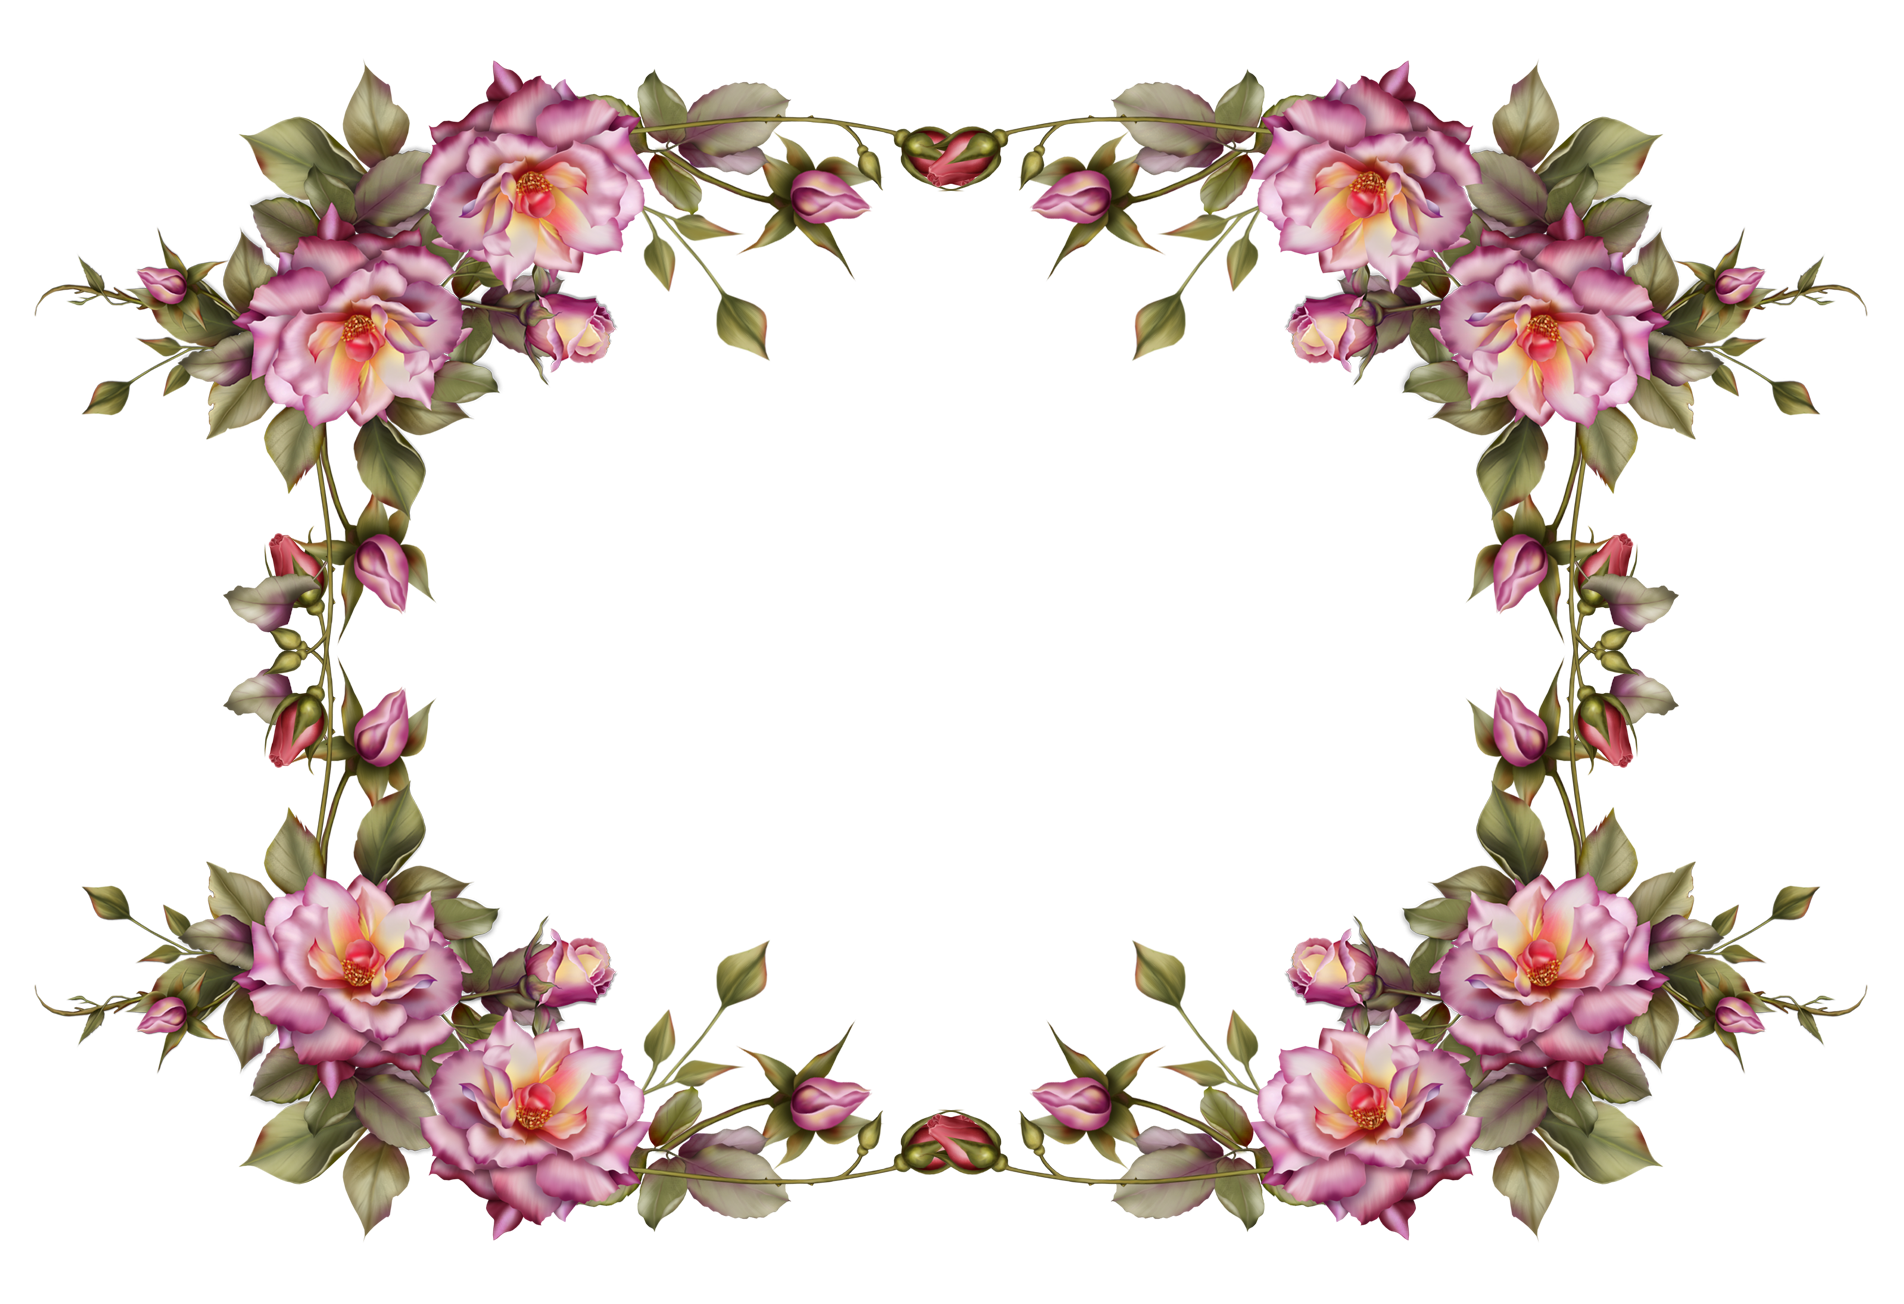 Flower Frame By Collect And Creat D69ijjv Png 1904 1304 Flower Frame Flower Art Flower Border